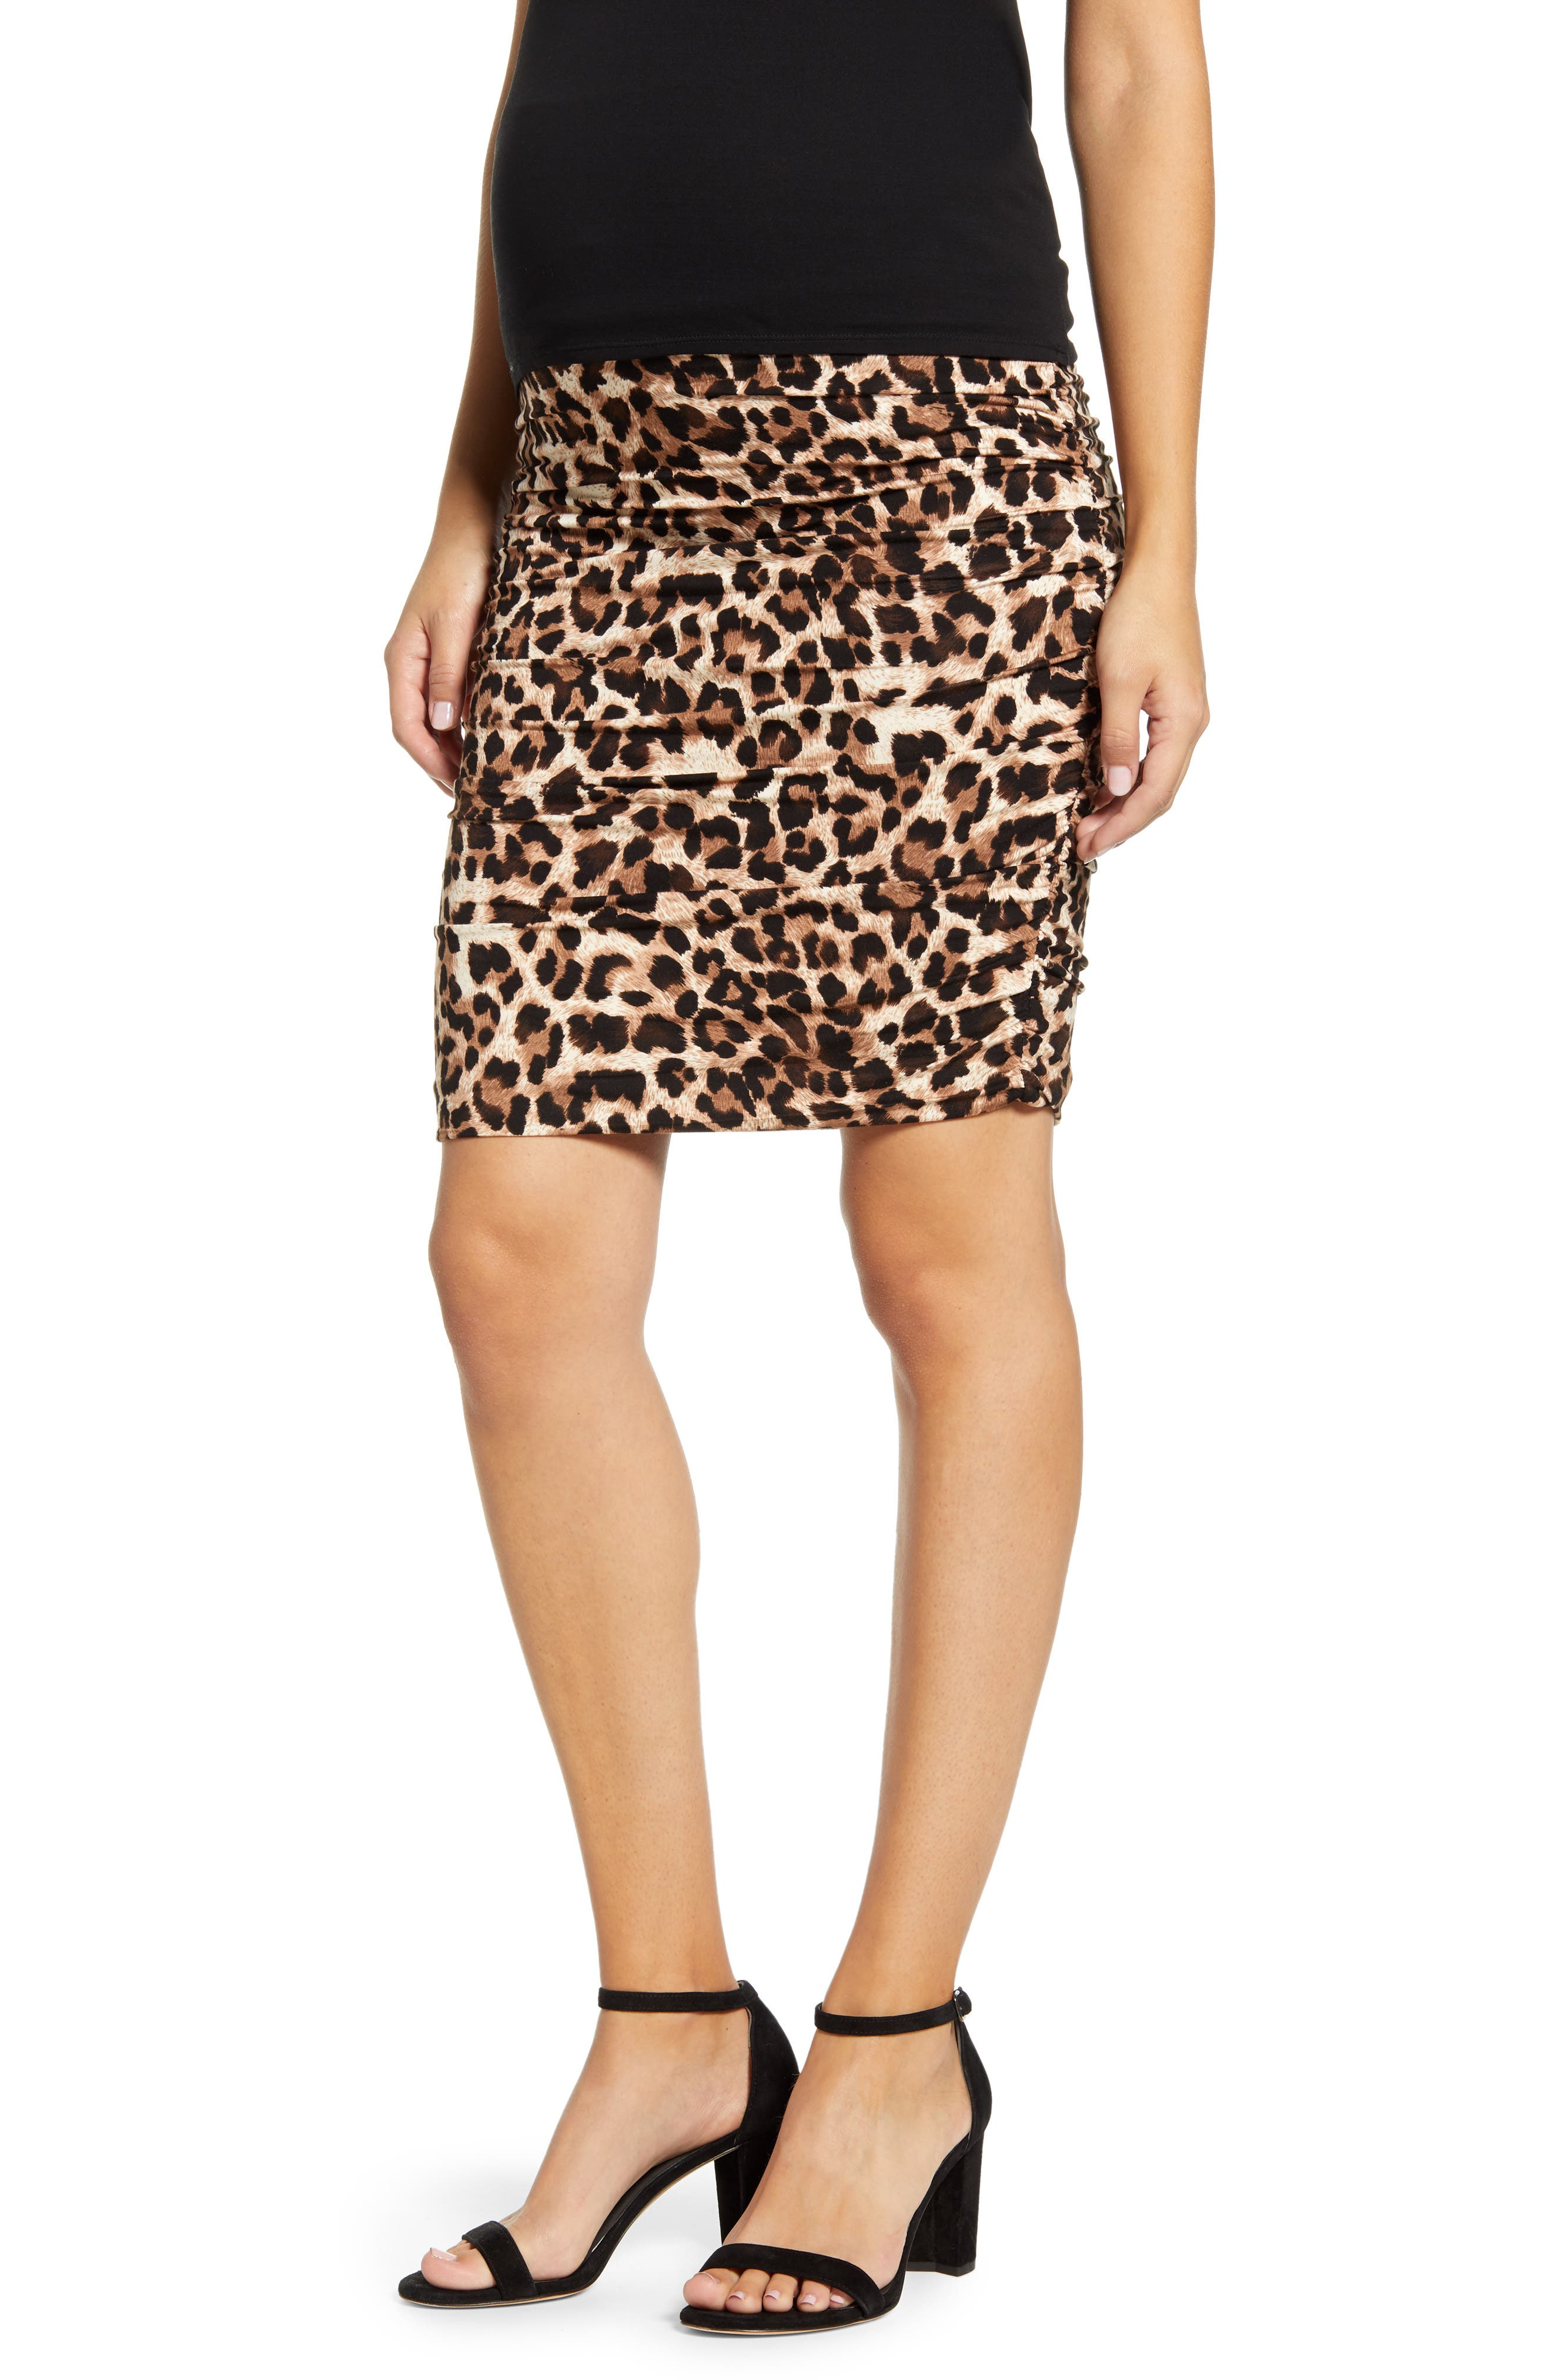 Opt for fierce instead of frumpy for your prego look with this sleek jersey skirt covered in leopard spots and styled with figure-hugging side ruching. An over-the-bump panel provides a secure, flattering fit through every trimester and after. Style Name: Angel Maternity Ruched Leopard Print Maternity Skirt. Style Number: 5932976. Available in stores.